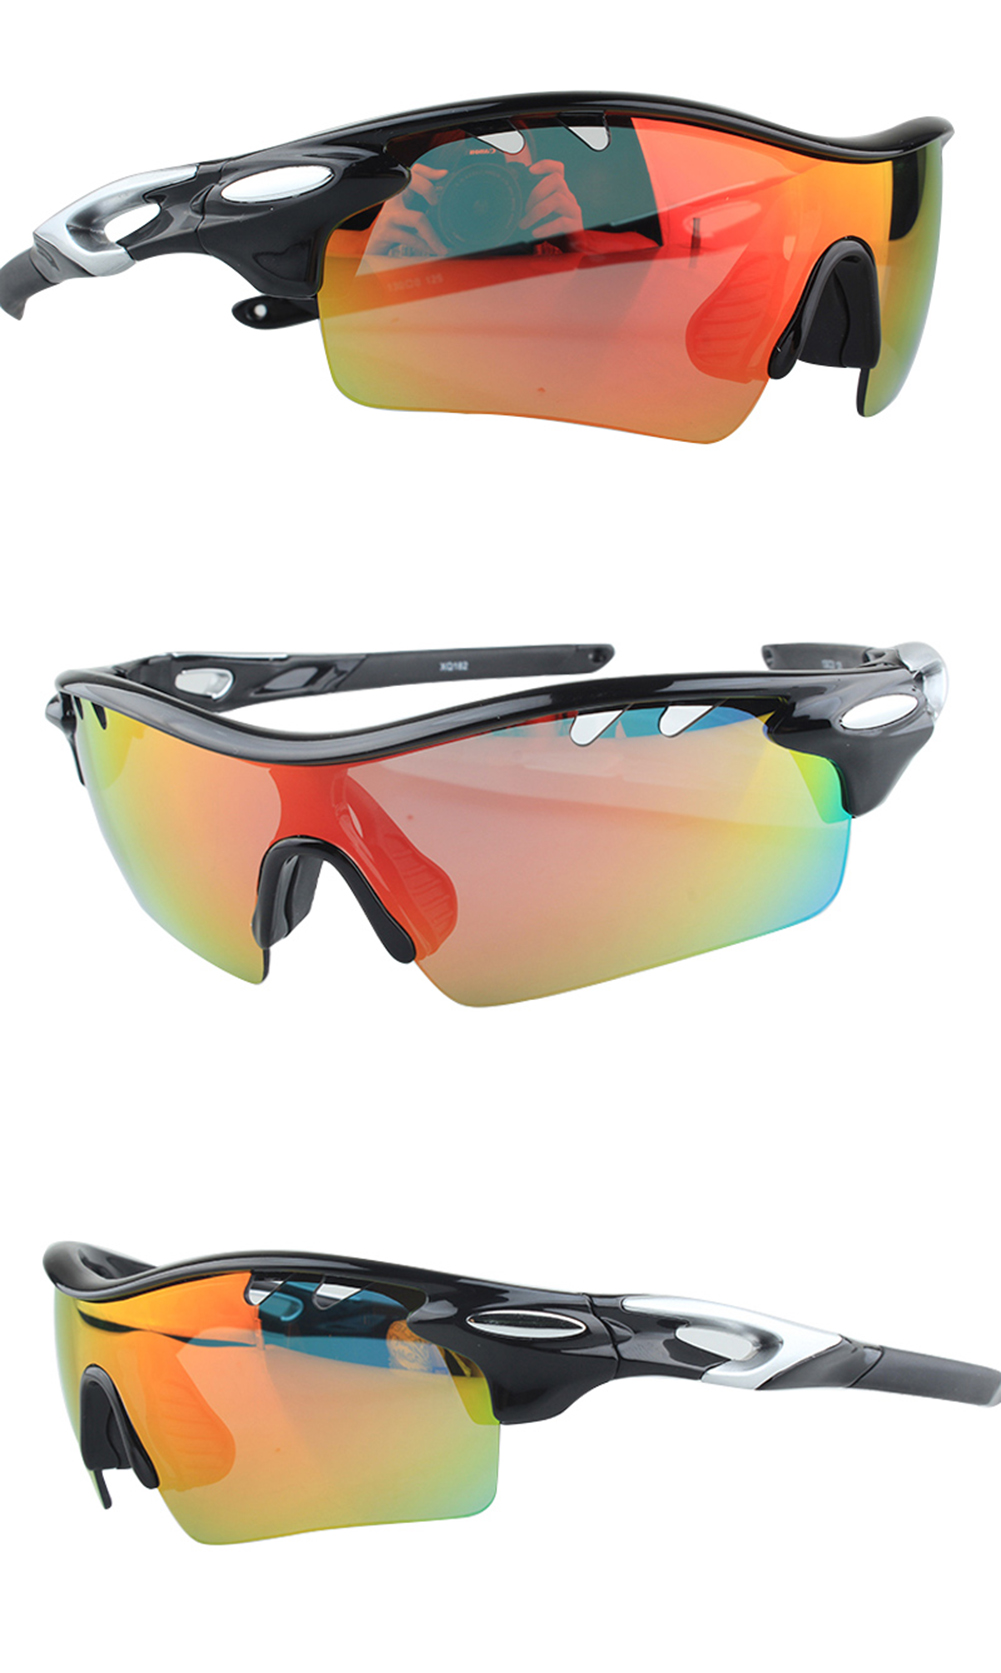 OEM Optical Inserts Cycling Glasses 5 Lens Prescription Sport Glasses Interchangeable Sunglasses For Outdoor Sport